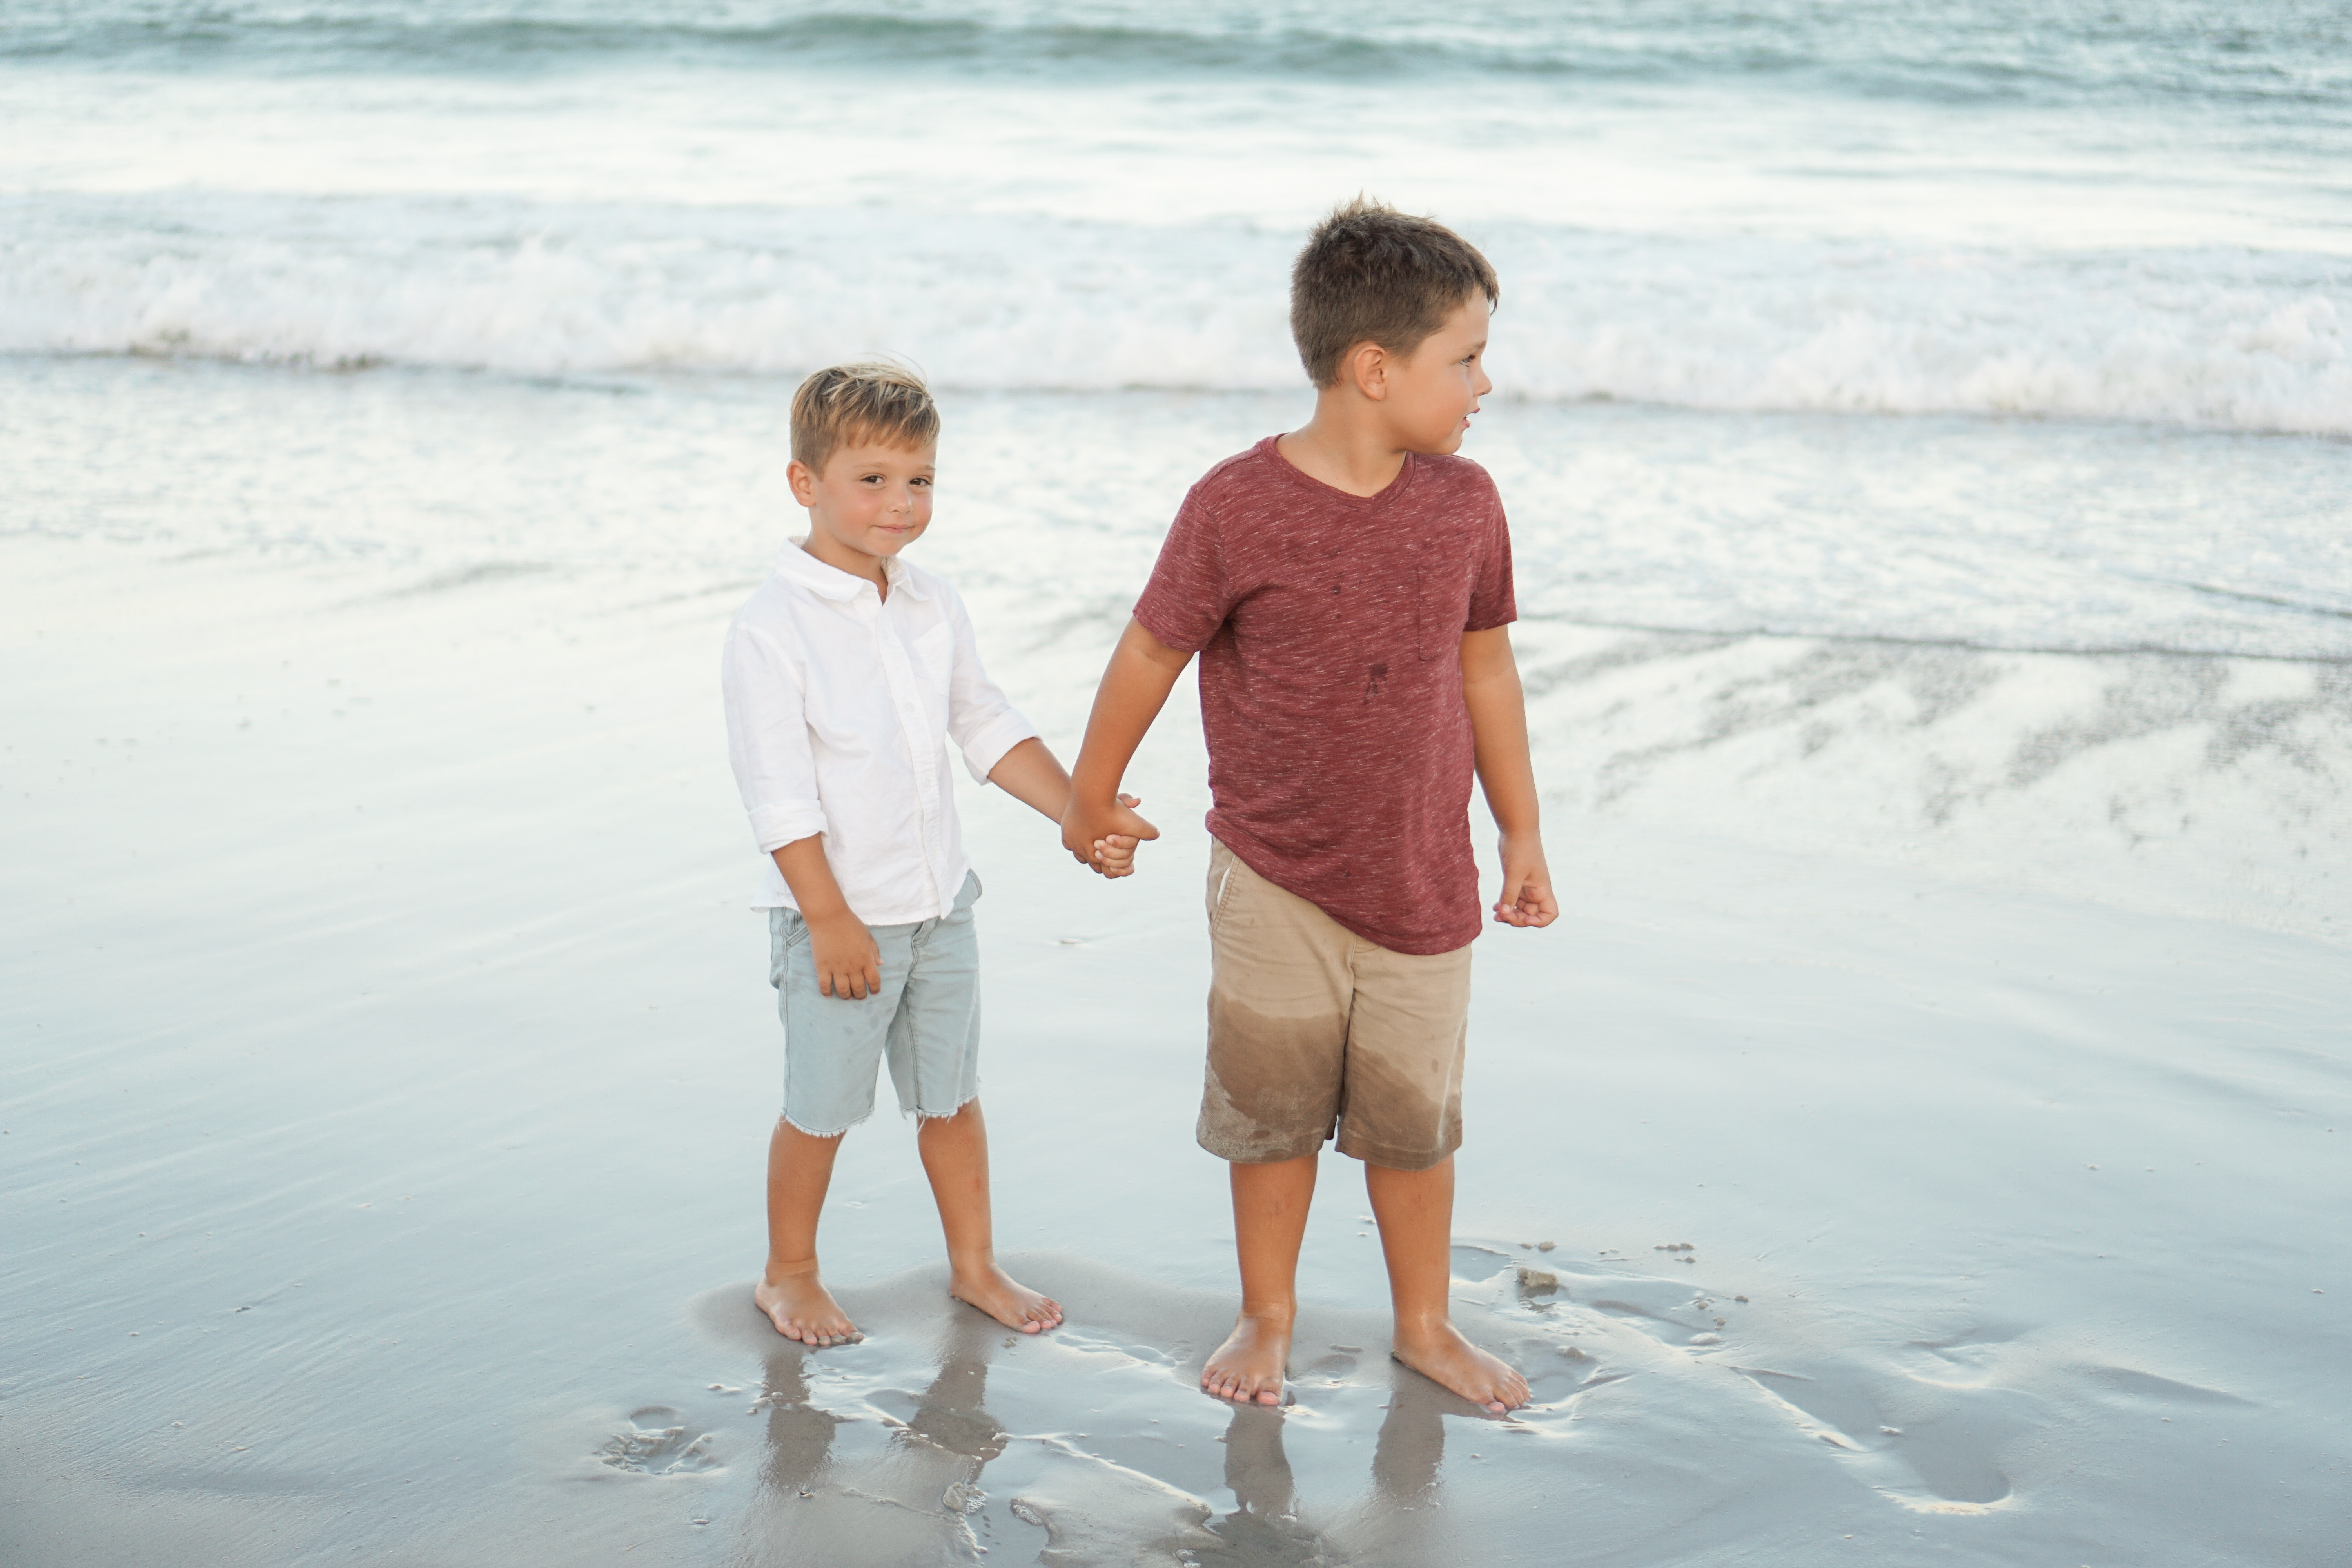 two boy's standing on beach sand